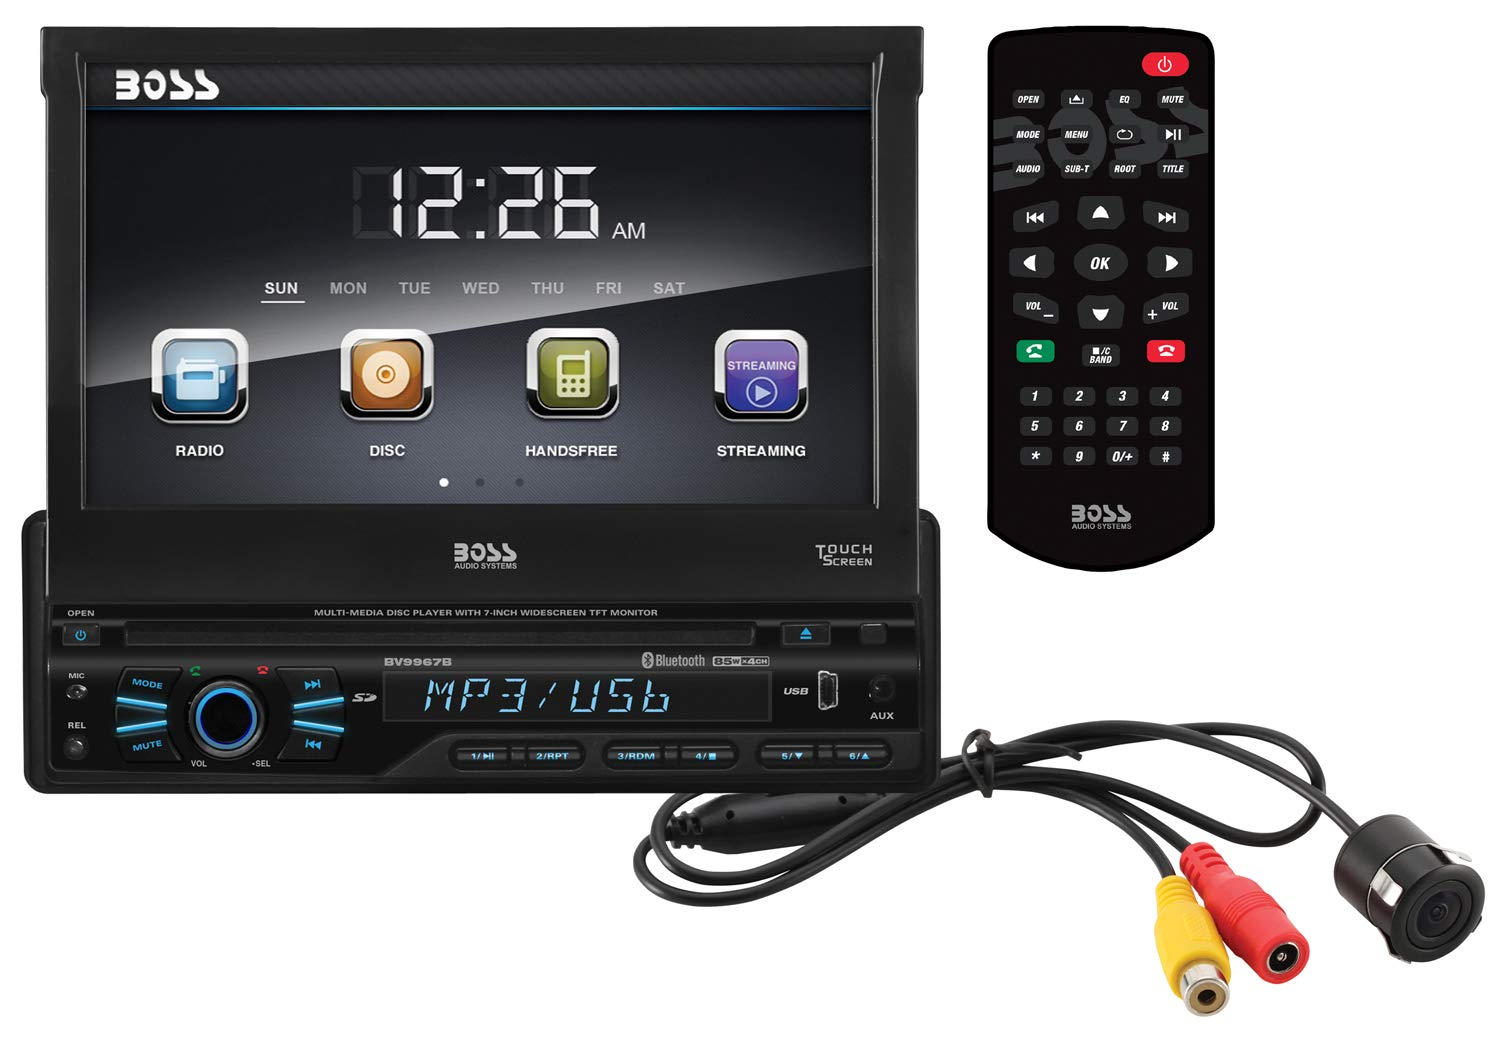 Boss Audio Bvb9967rc Car Dvd Player Bluetooth Your System Diagram Page 10 Diymobileaudiocom And Hands Free Calling 7 Inch Lcd Touchscreen Monitor Mp3 Cd Usb Sd Ports